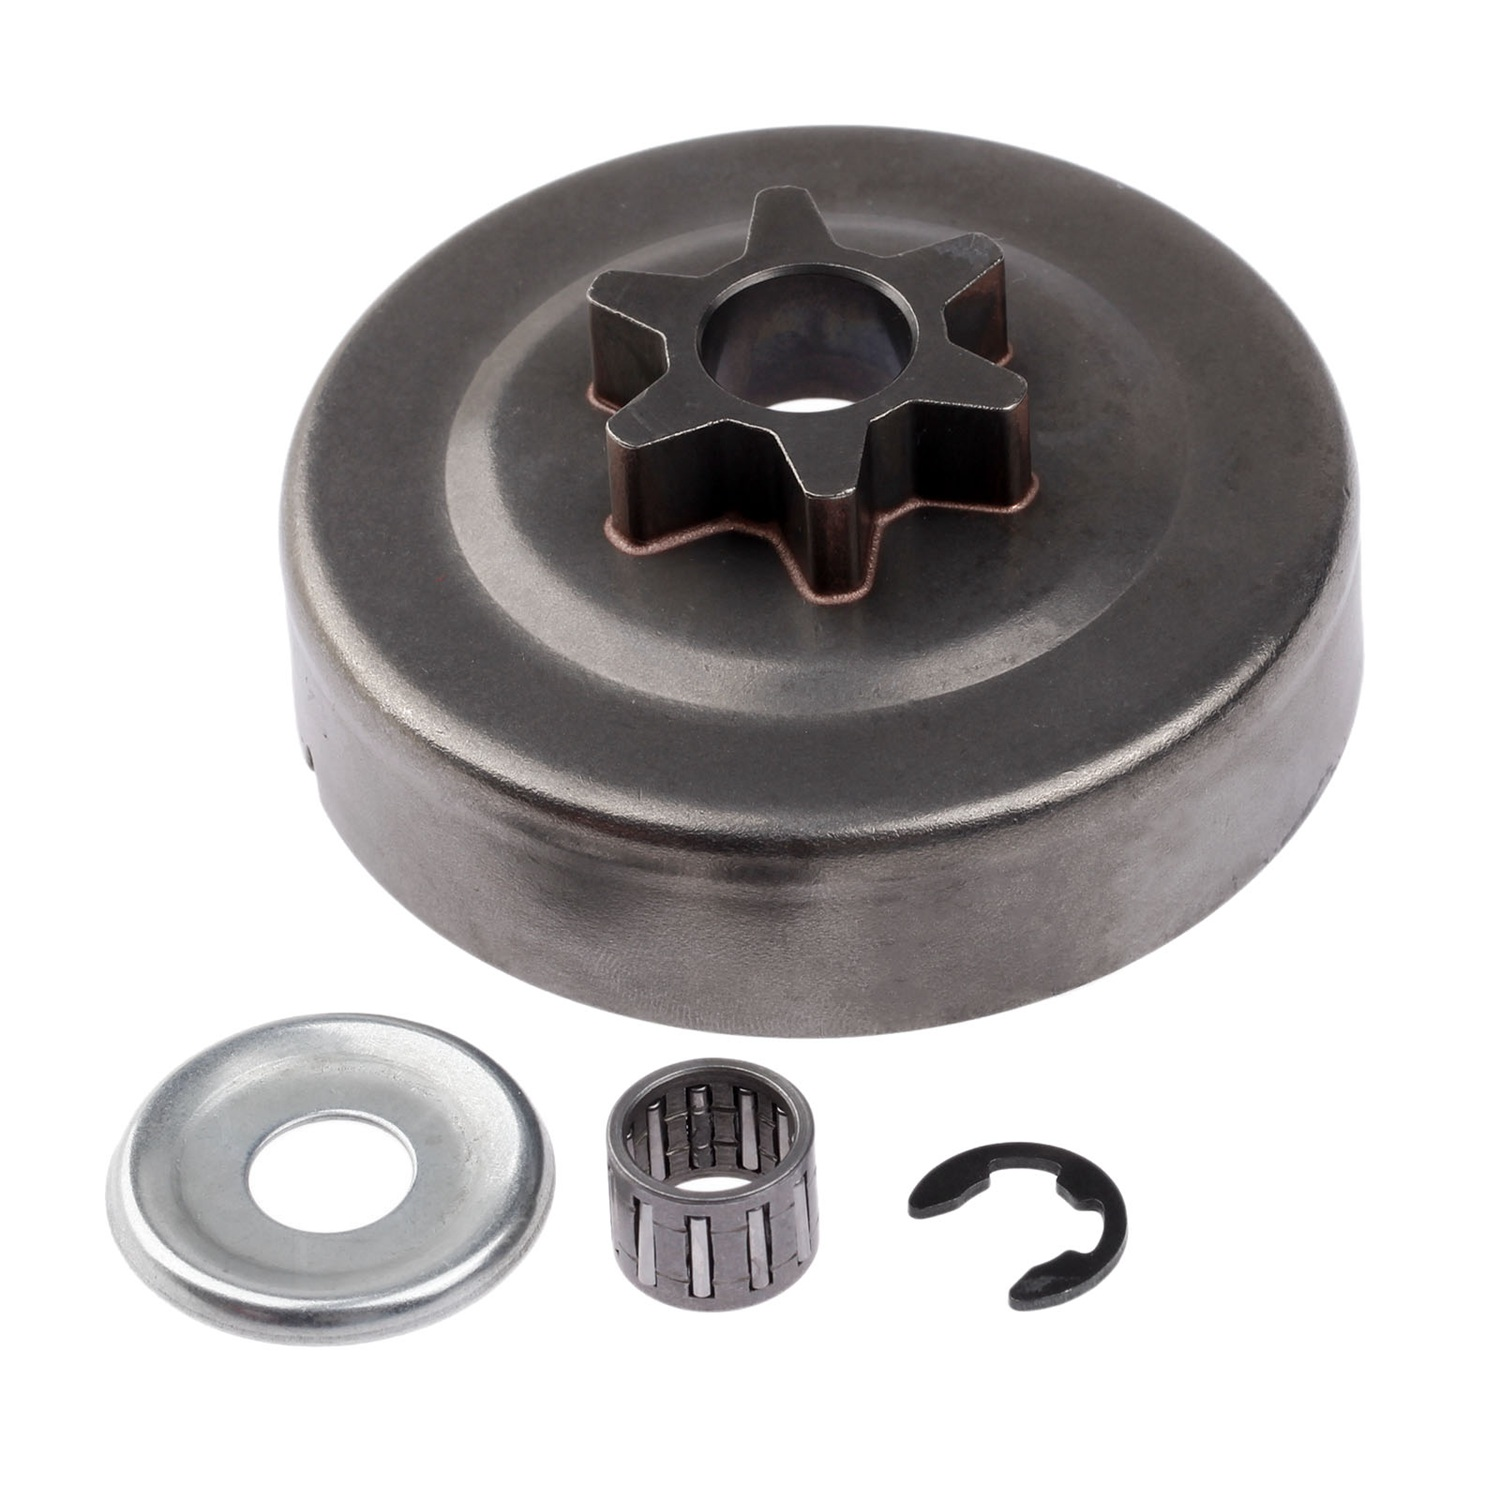 Promotion! 3/8 6T Clutch Drum Sprocket Washer E-Clip Kit For Stihl Chainsaw 017 018 021 023 025 Ms170 Ms180 Ms210 Ms230 Ms250